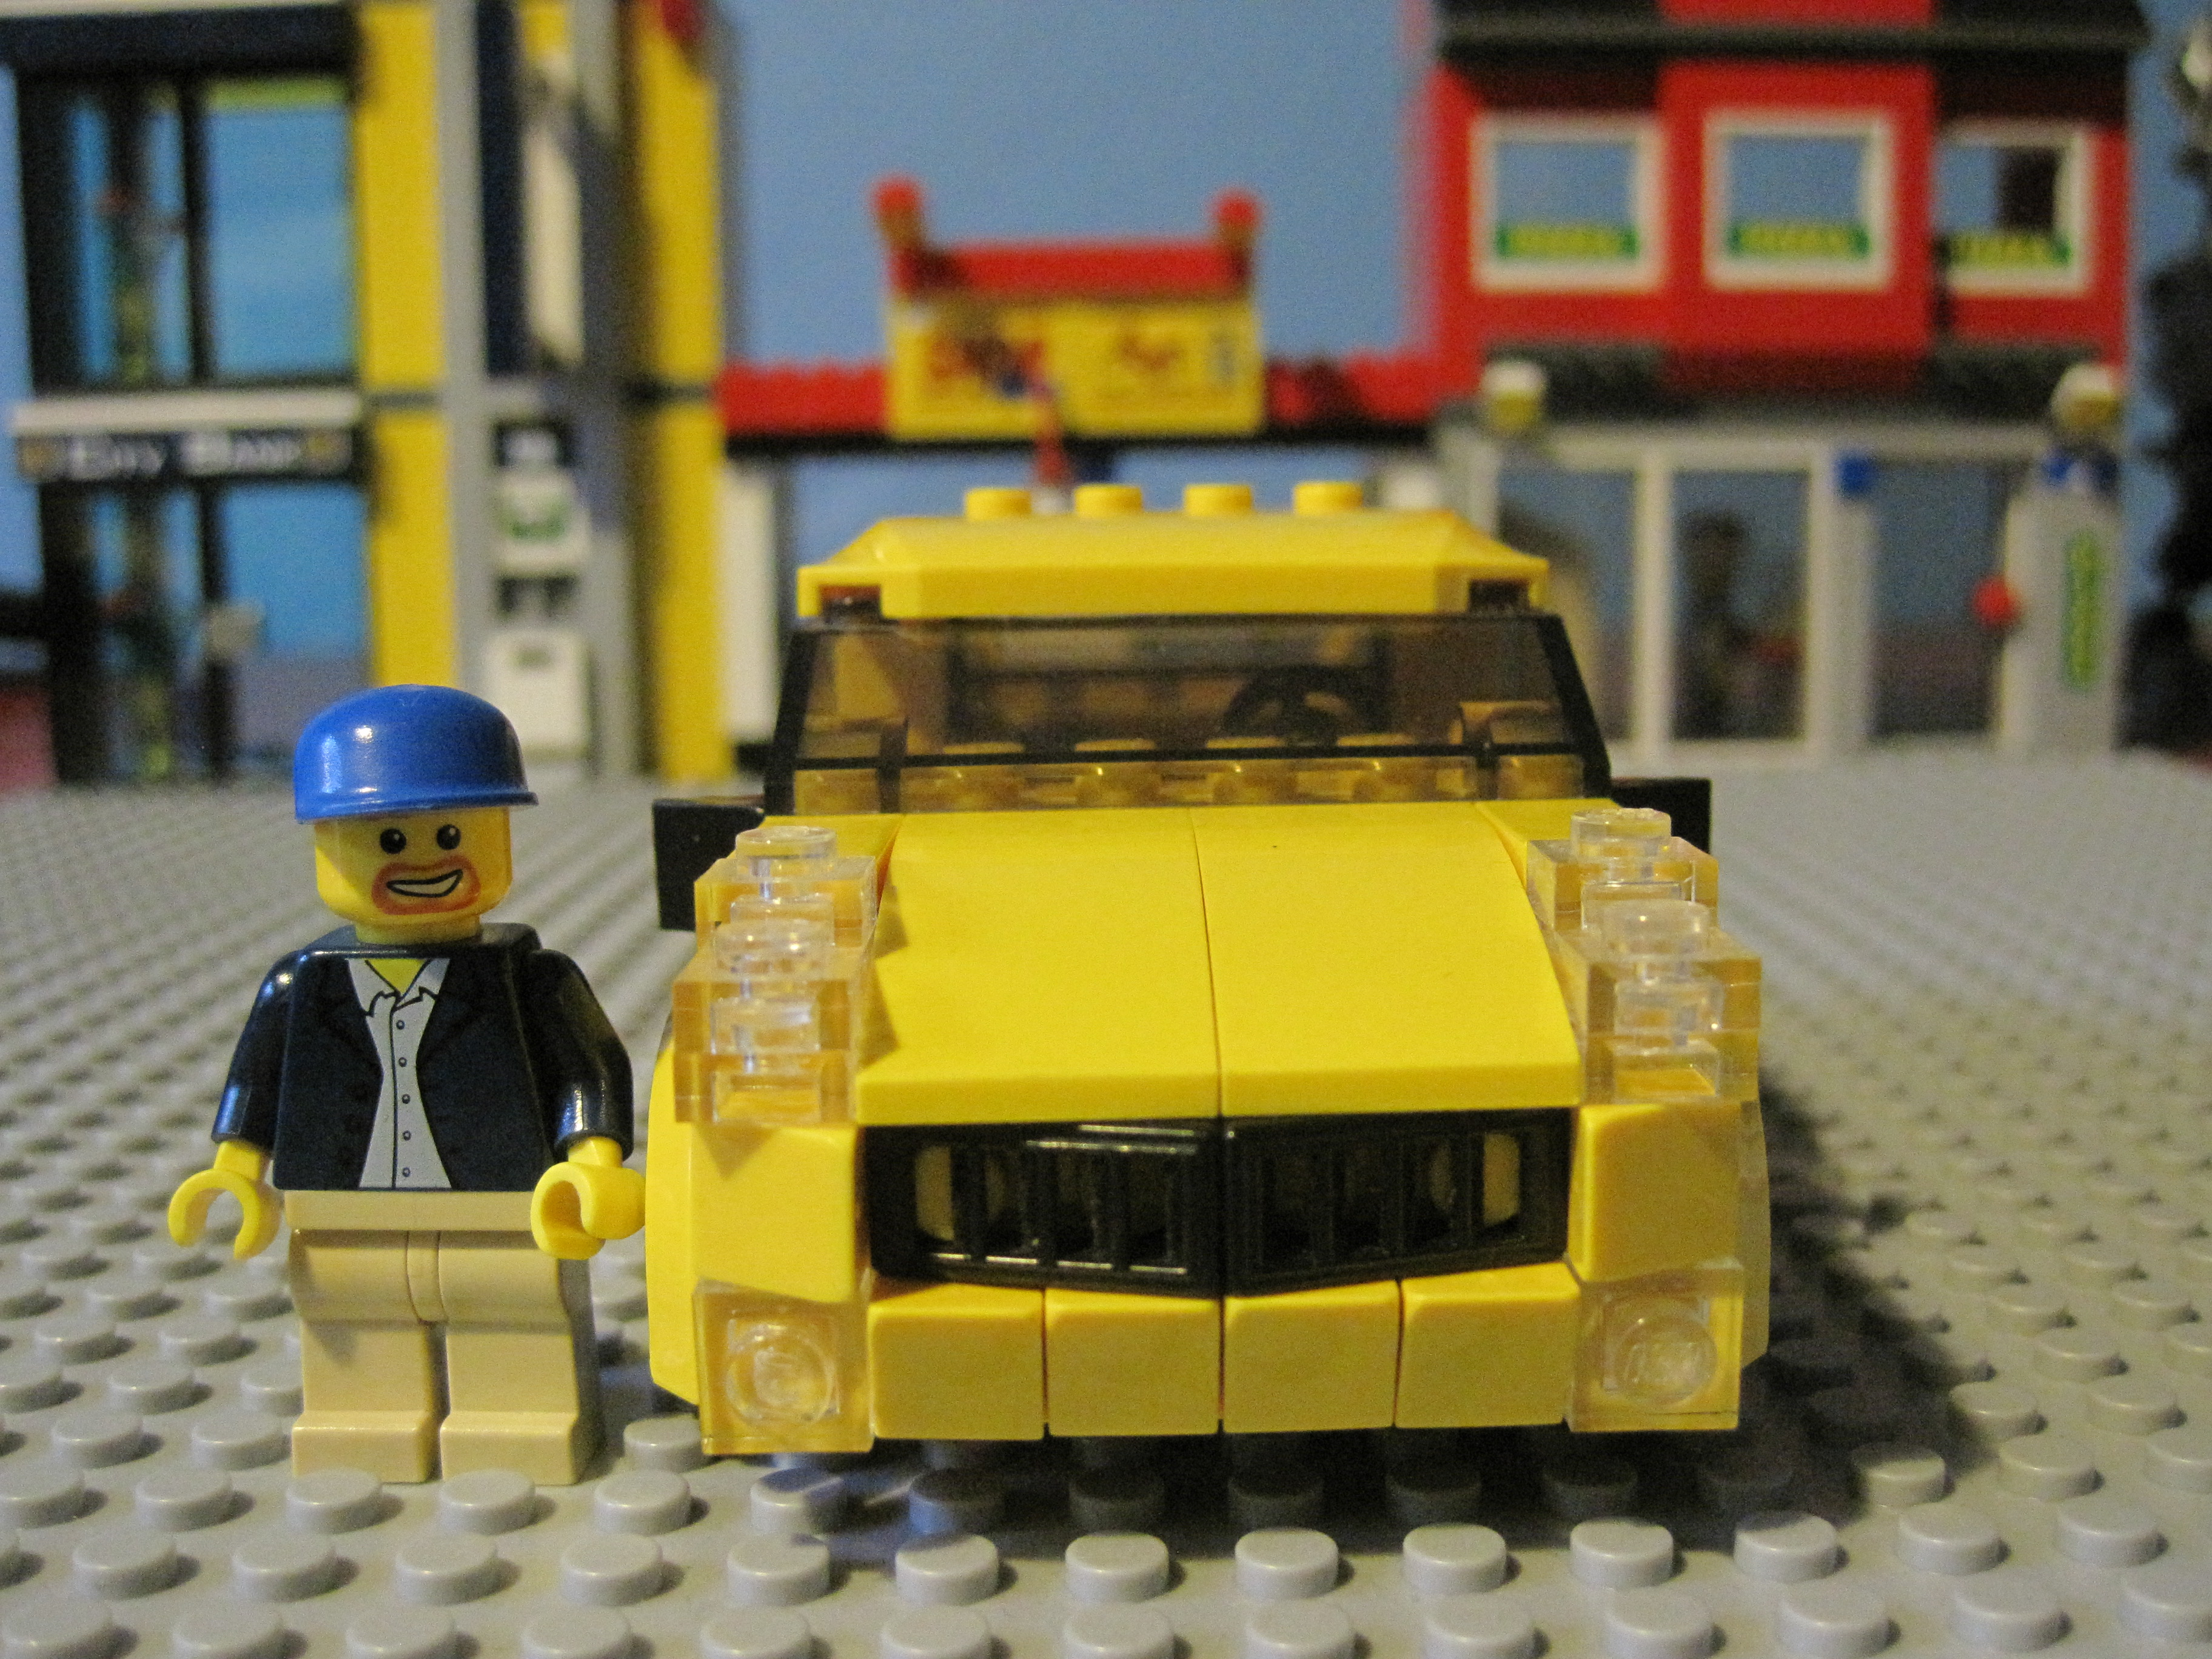 yellow_car-front.jpg